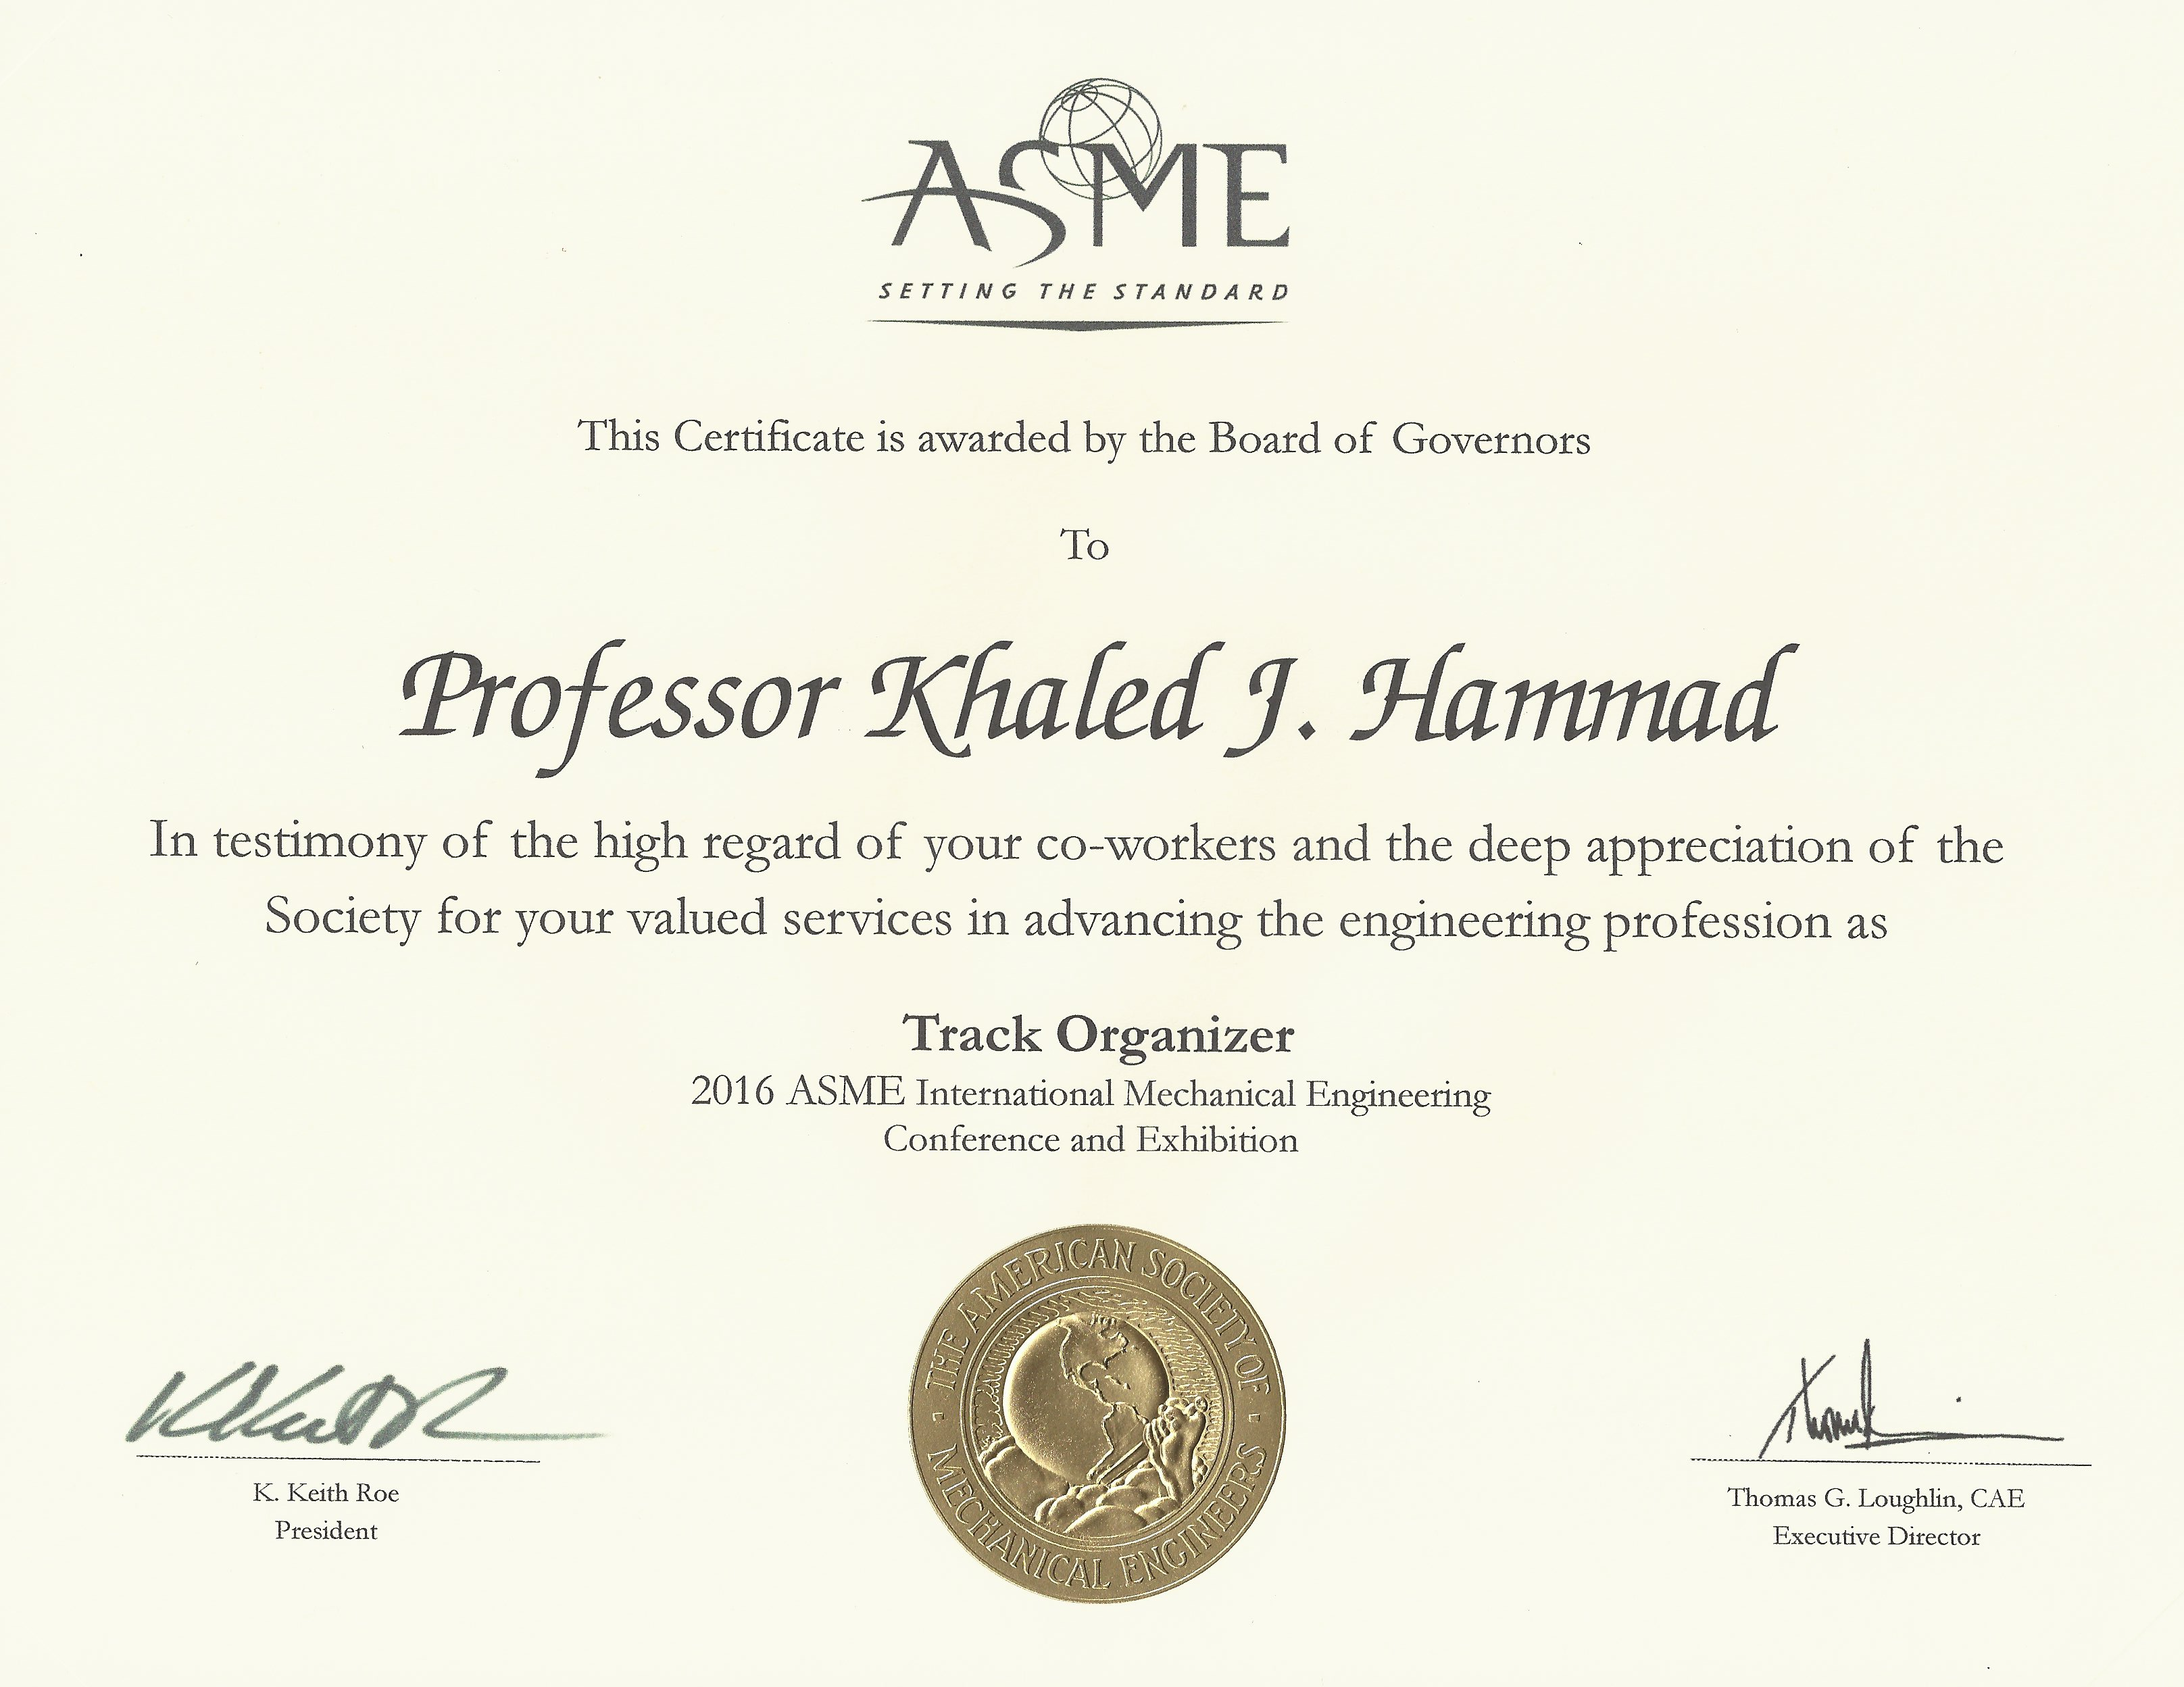 Ccsu khaled hammad asme certificate of appreciation for valued services in advancing the engineering profession as a xflitez Gallery